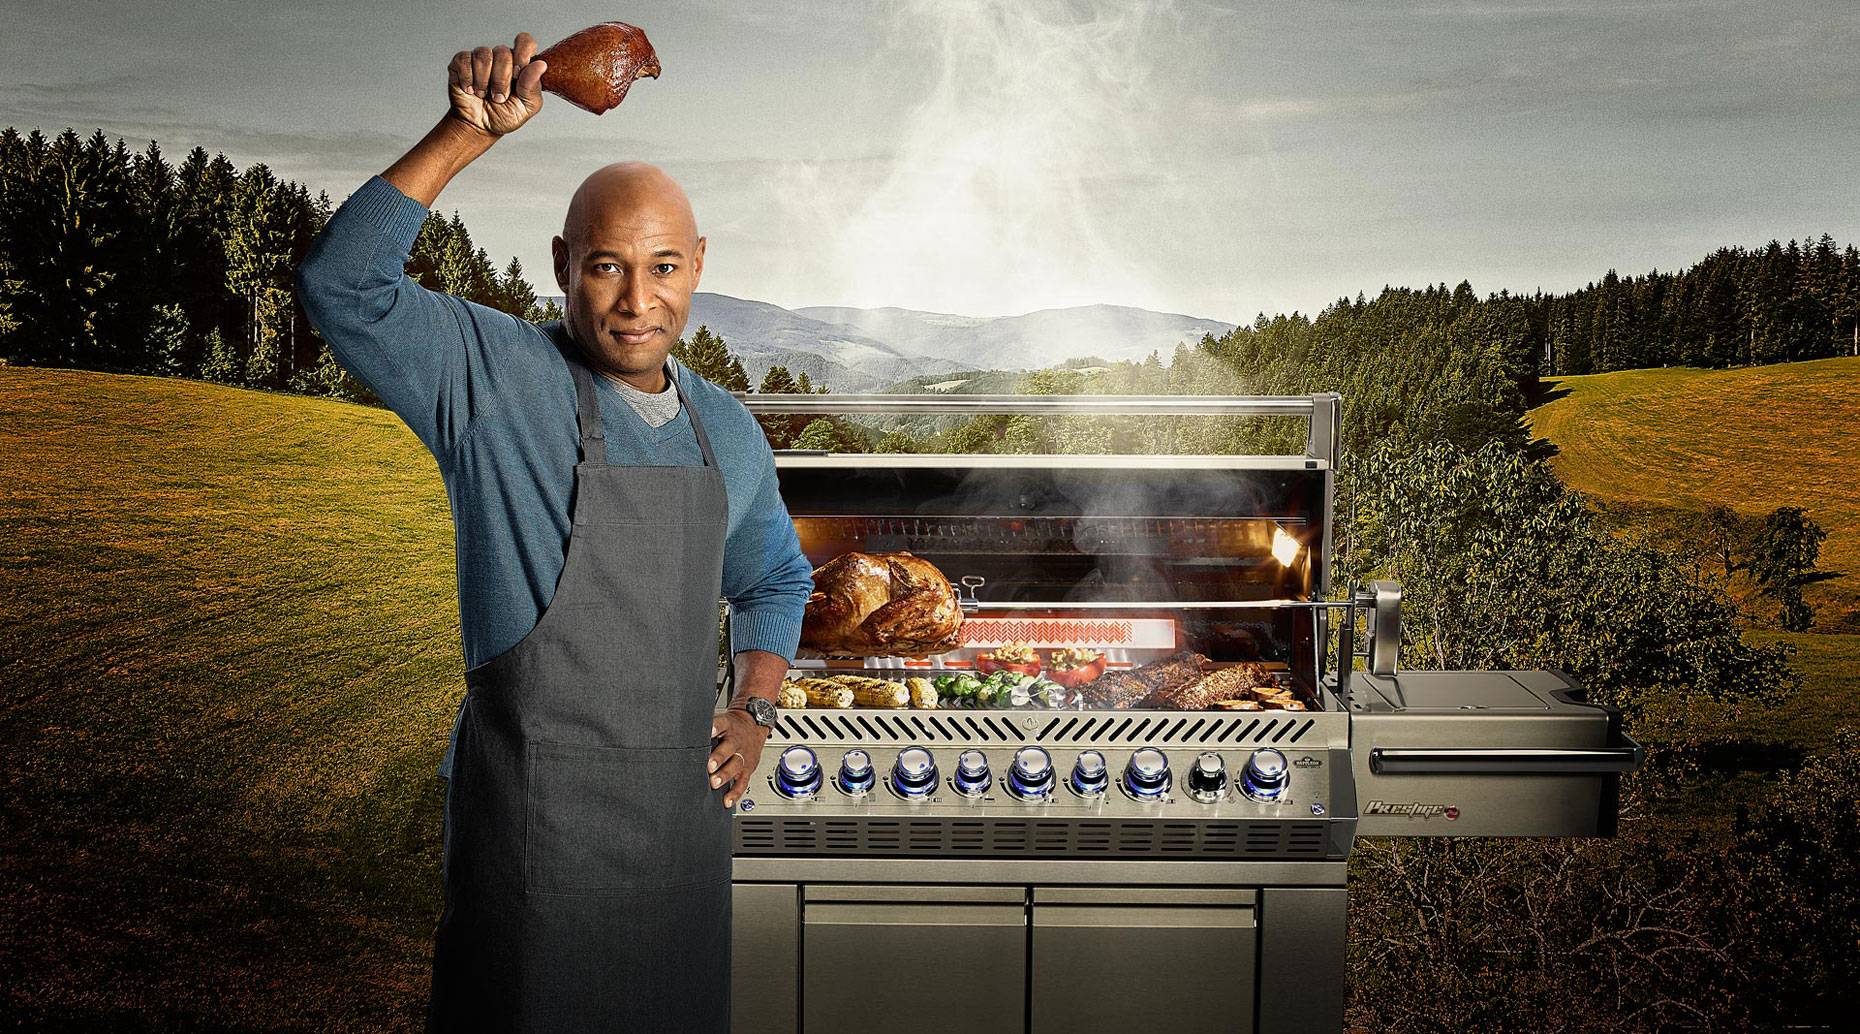 Man cooking on a BBQ grill